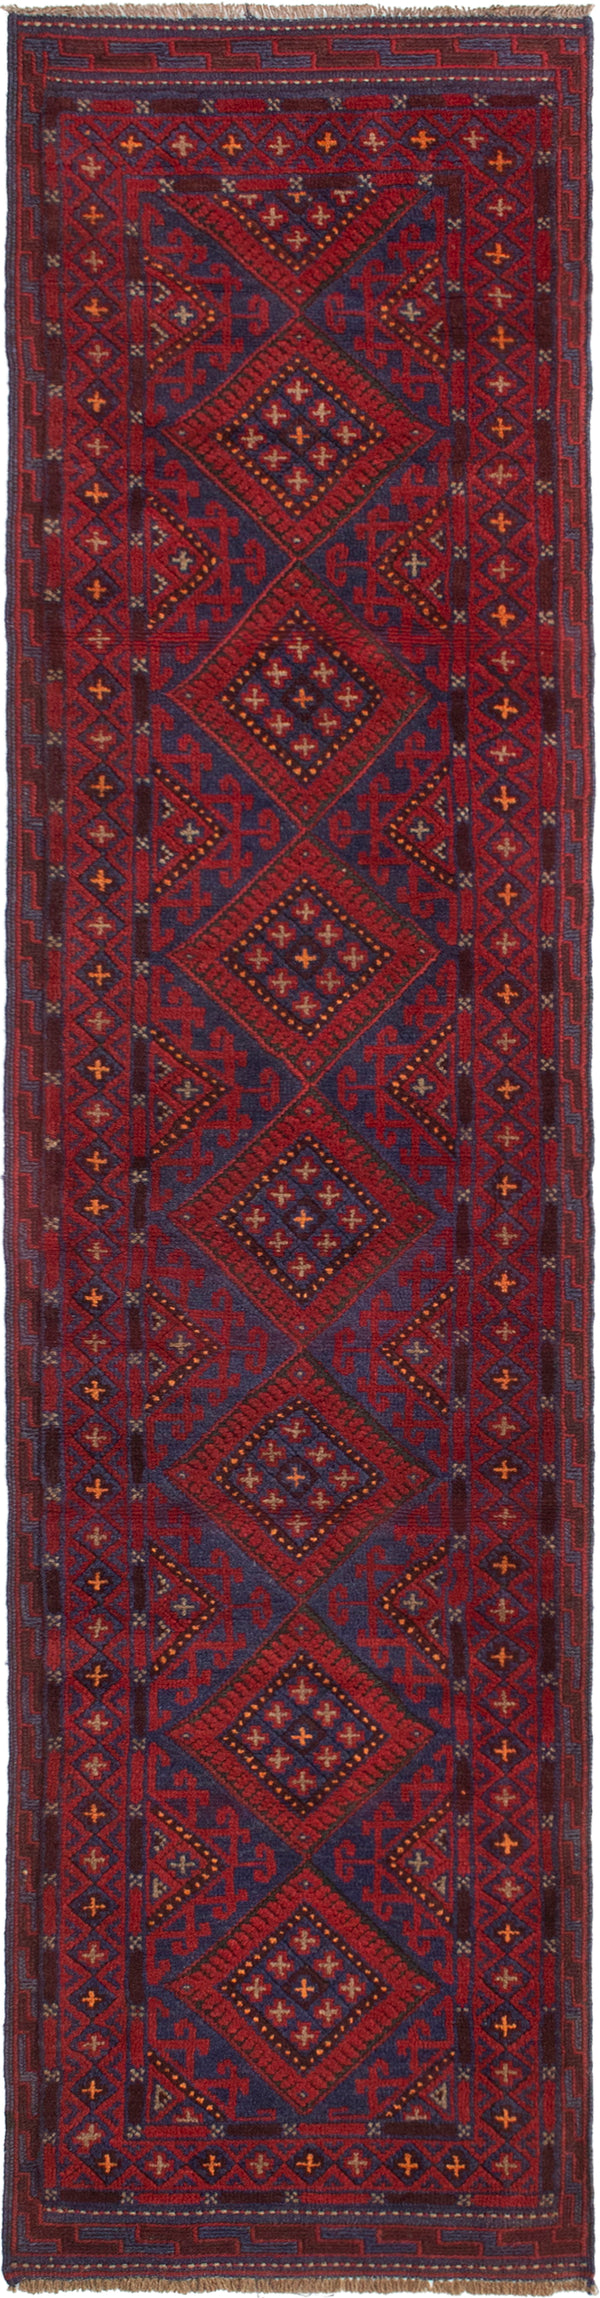 Hand-knotted Afghan Bordered  Tribal Tajik-Caucasian Runner rug  Dark Red 2 x 9